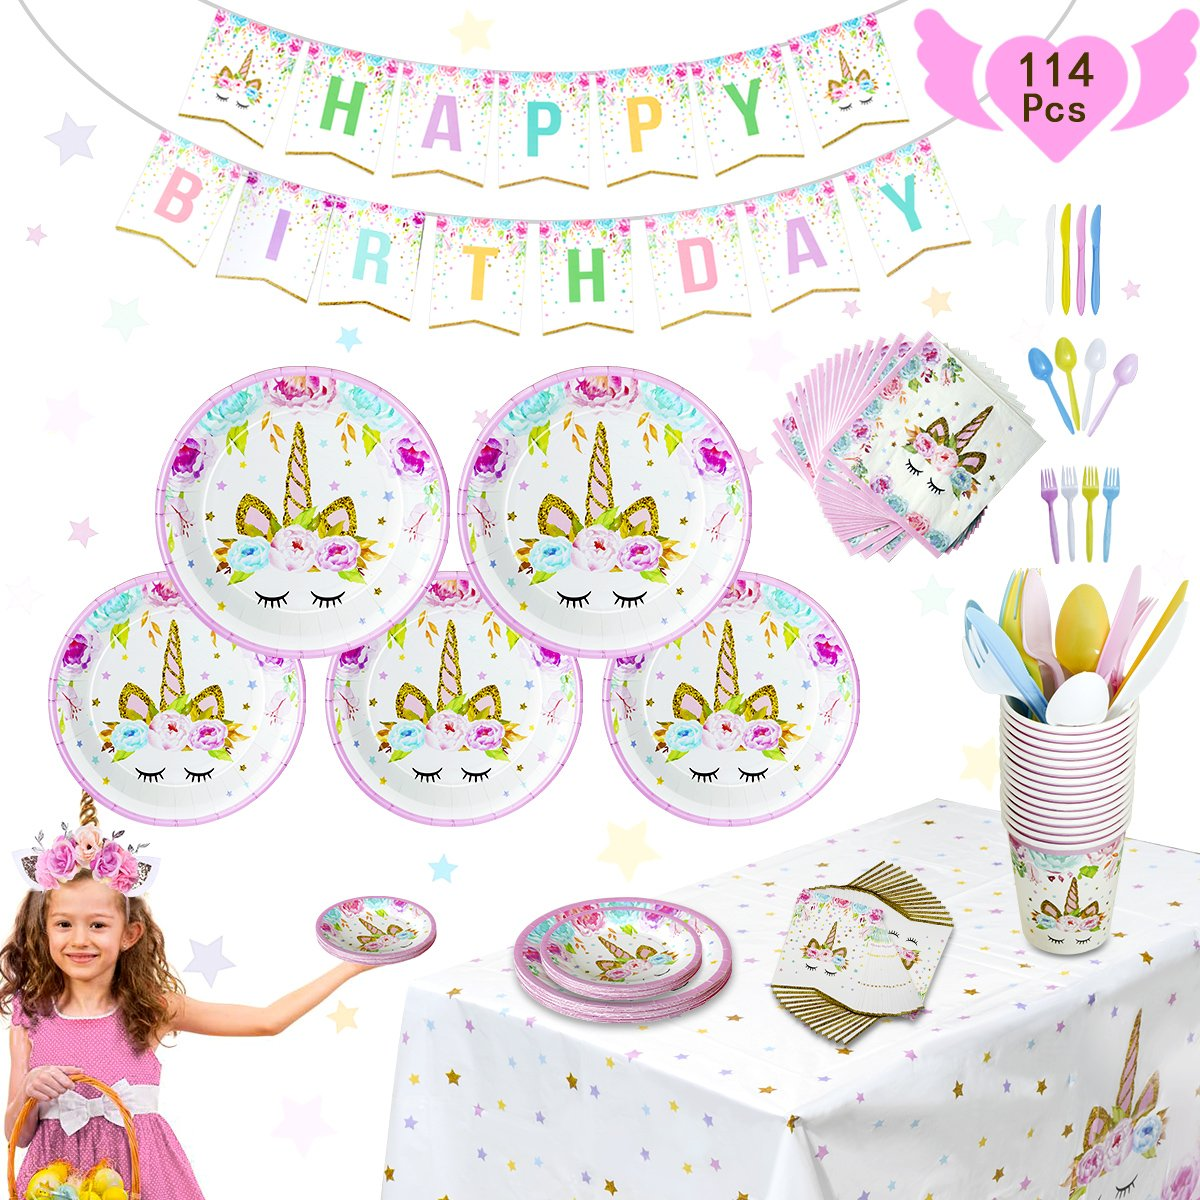 Unicorn Party Supplies Set - 2 sizes Cake Plates, Napkins, Cups, Forks, Spoons, Knifes, Birthday Rainbow Banner, Table Cloth - 114 Pcs Totally - Lovely Sparkle Decorations Gift For Birthday Party by ONE PHOENIX